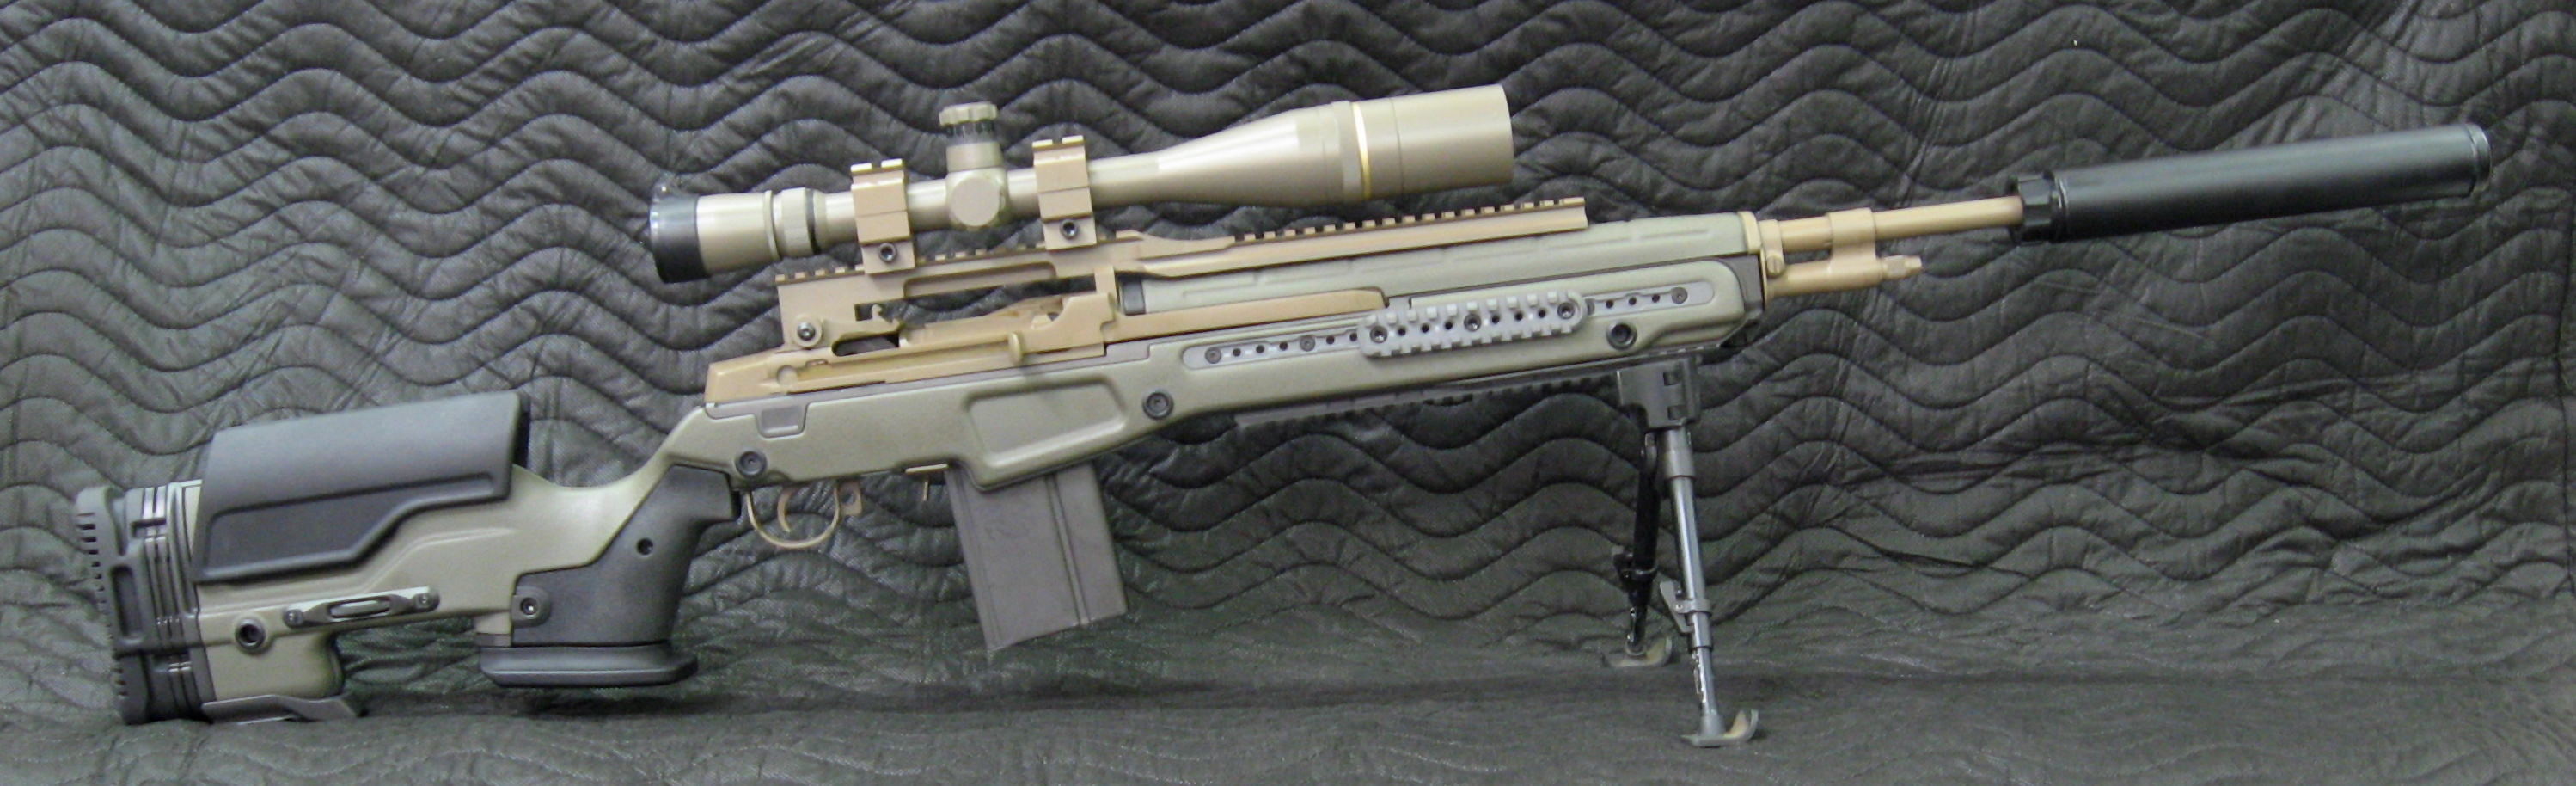 Gruning Precision: tactical rifles, Remington 700, M1A ...